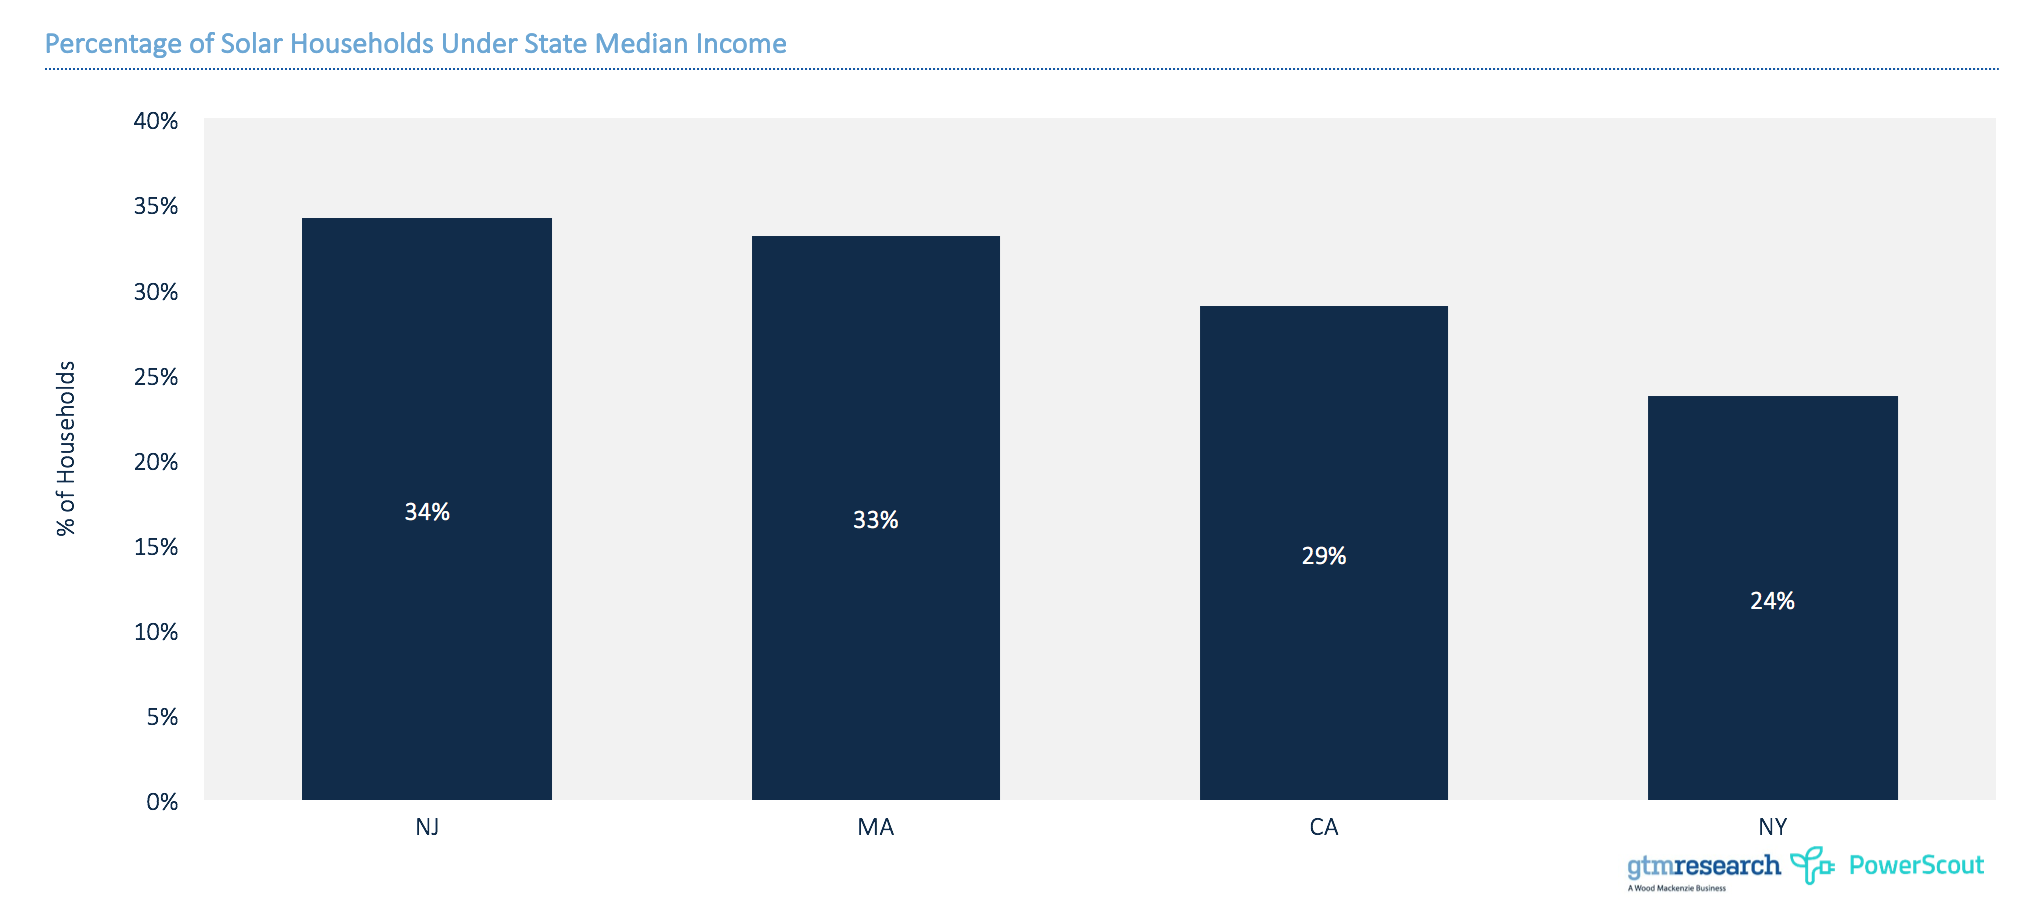 Percentage of solar households under state median income. Source: GTM Research and PowerScout